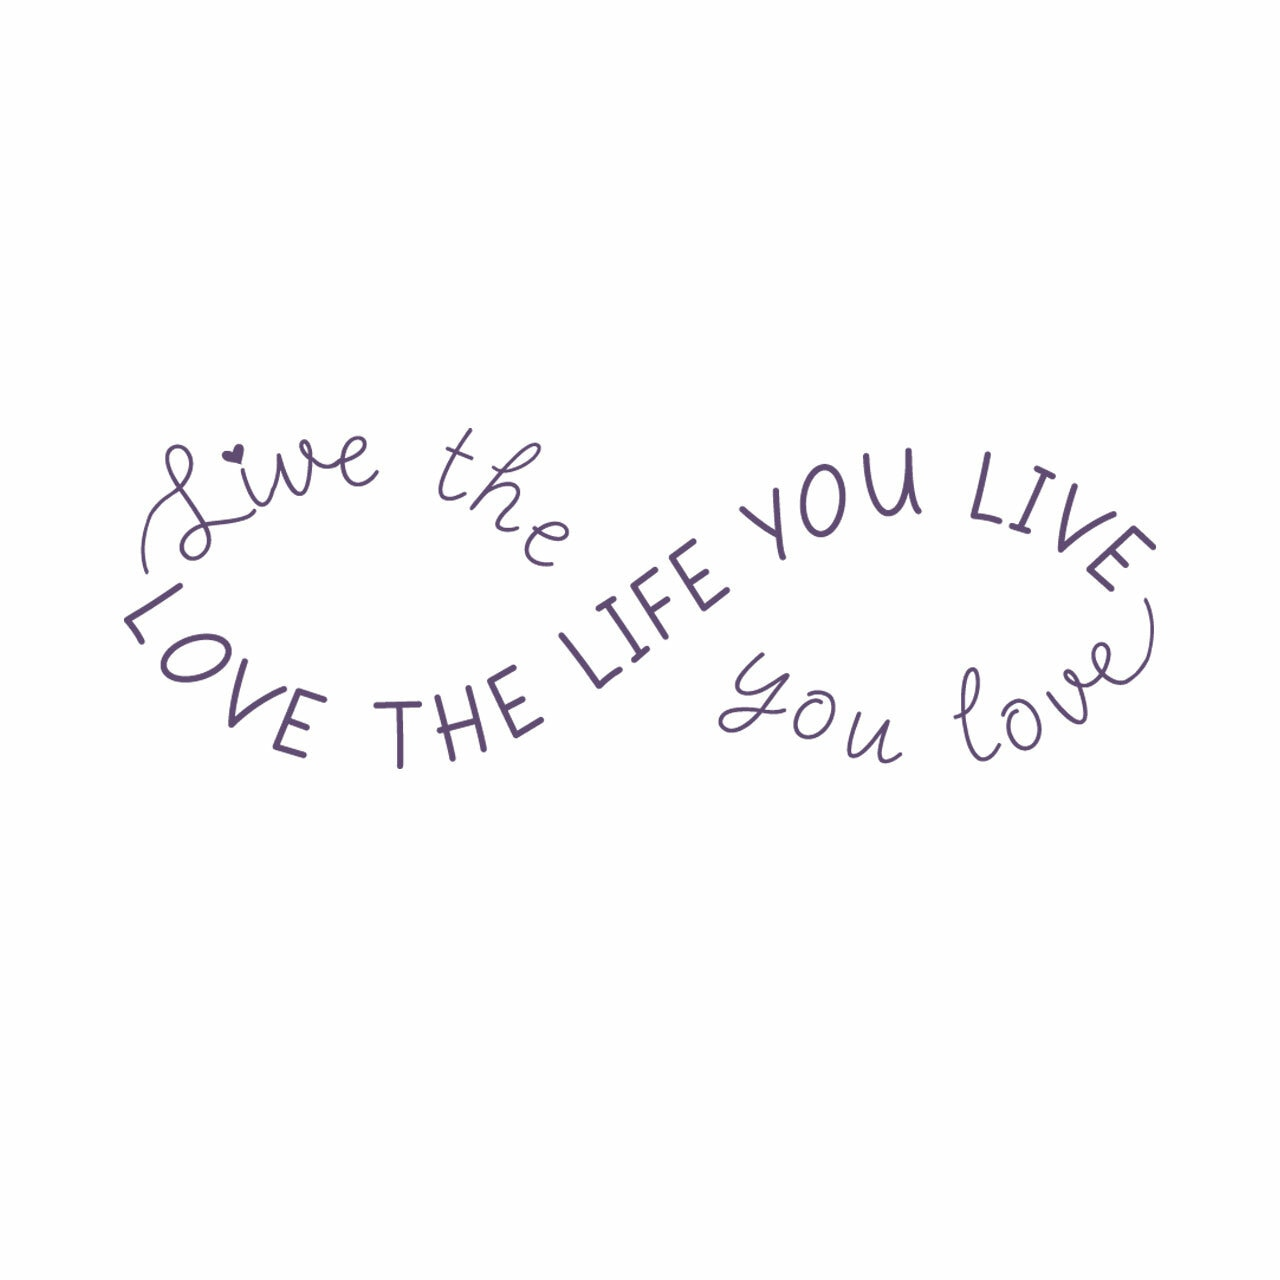 Live the life you love love the life you live in violet vinyl lettering on a white background